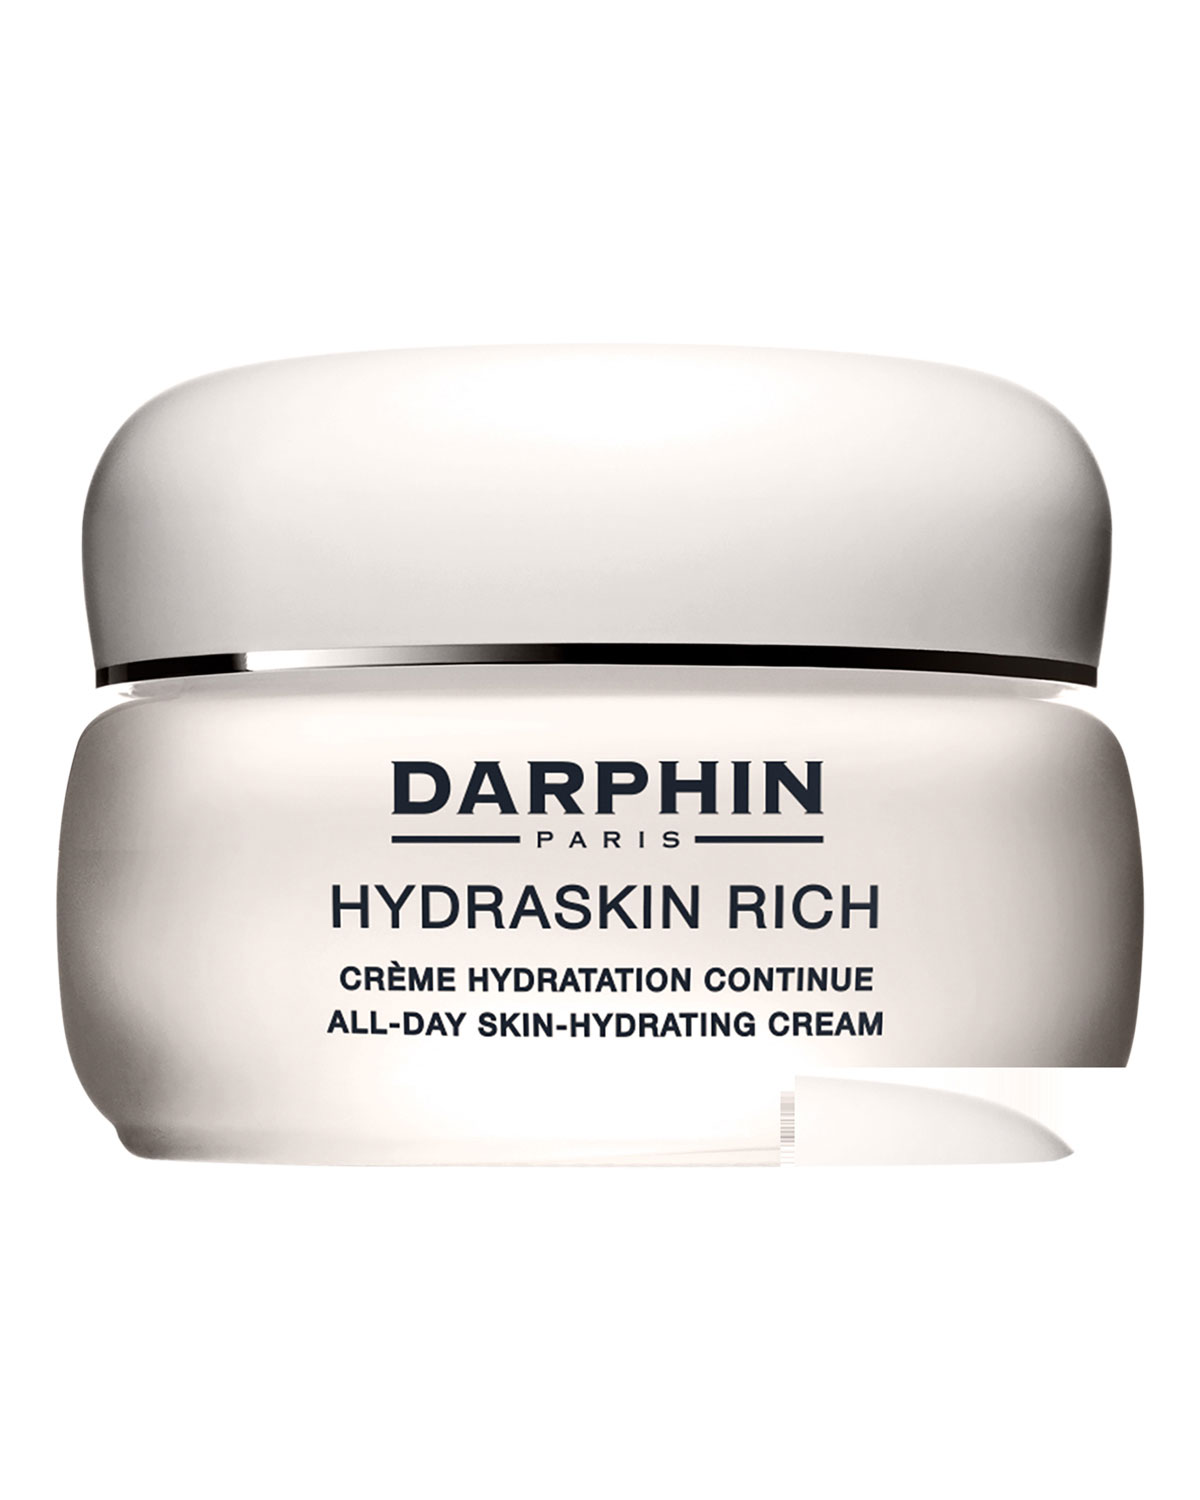 DARPHIN Hydraskin Rich All-Day Skin-Hydrating Cream, 1.7 Oz.